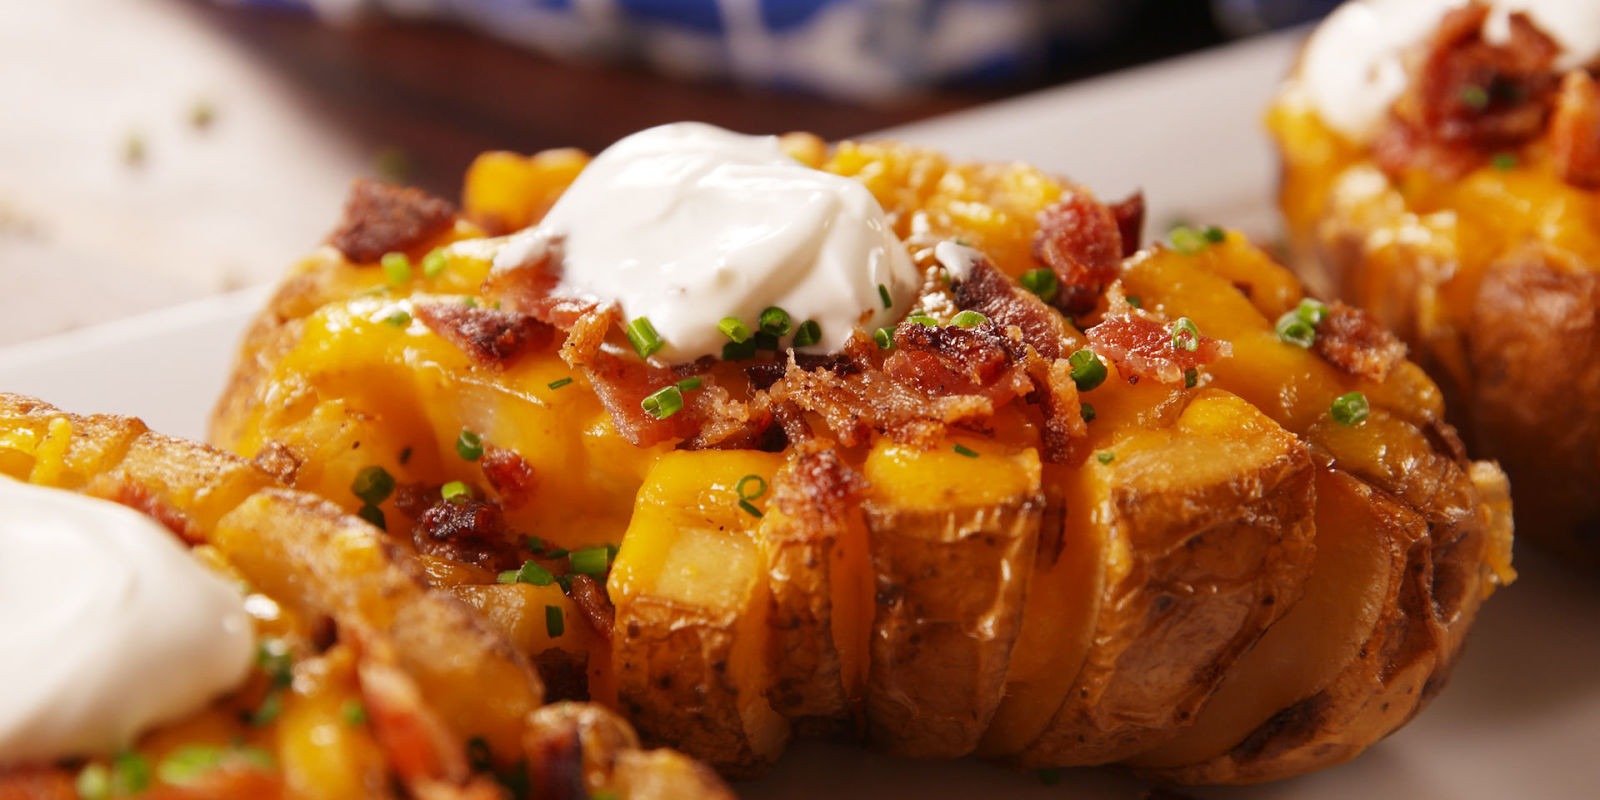 Bake A Potato  Cooking Bloomin Baked Potatoes Video – Bloomin Baked